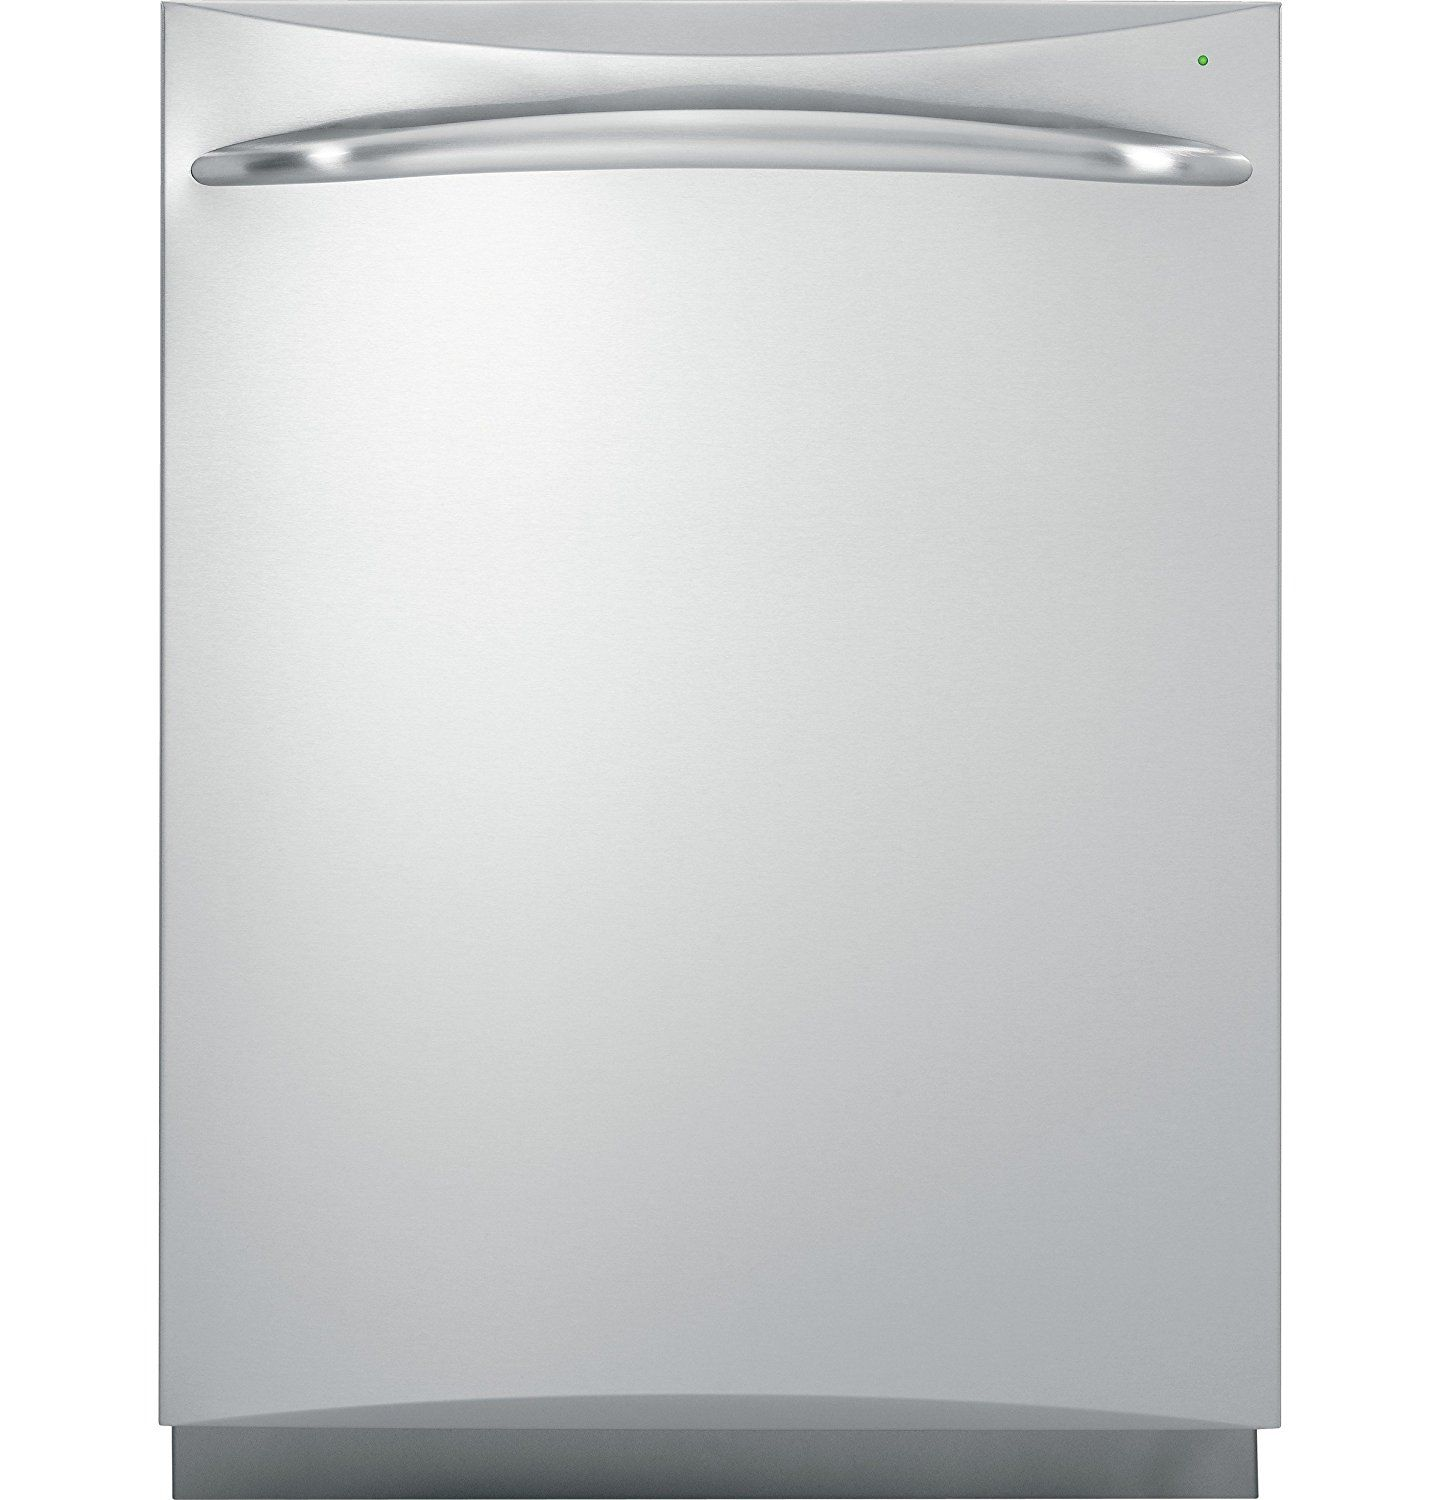 General Electric Pdwt580vss Ge Profile Dishwasher With Smartdispense Technology This Is An Am Ge Profile Dishwasher Integrated Dishwasher Dishwasher Parts